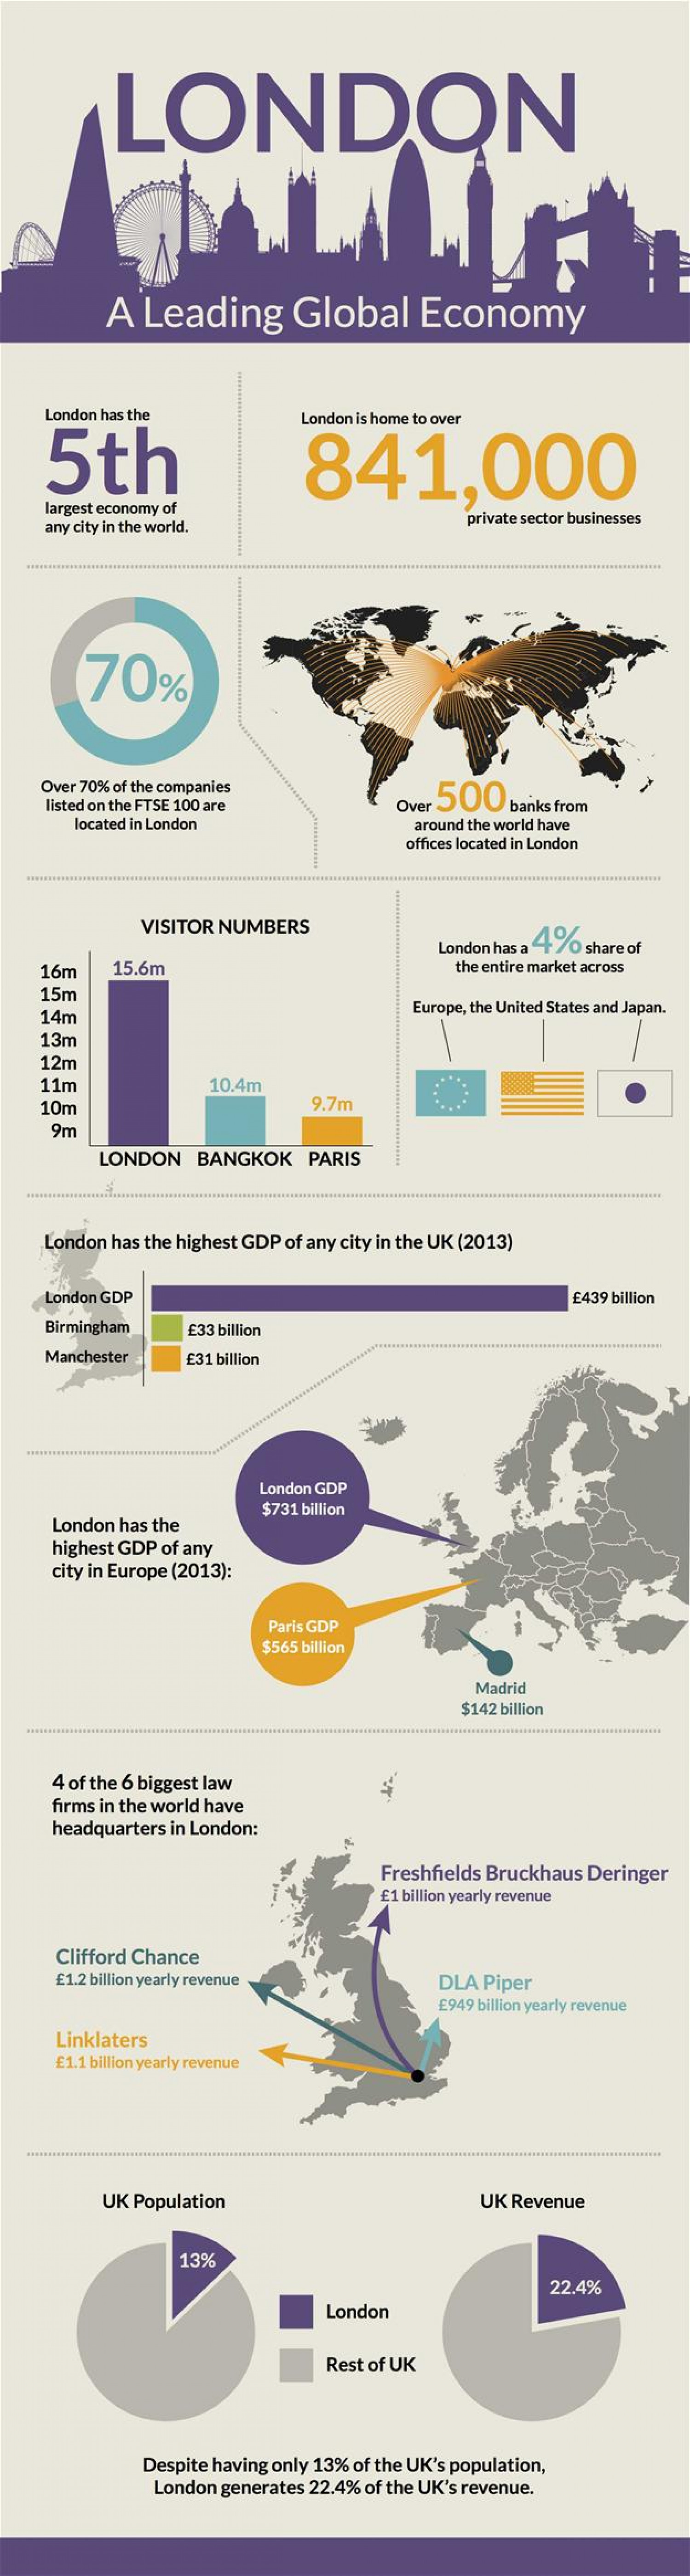 London: A Leading Global Economy Infographic